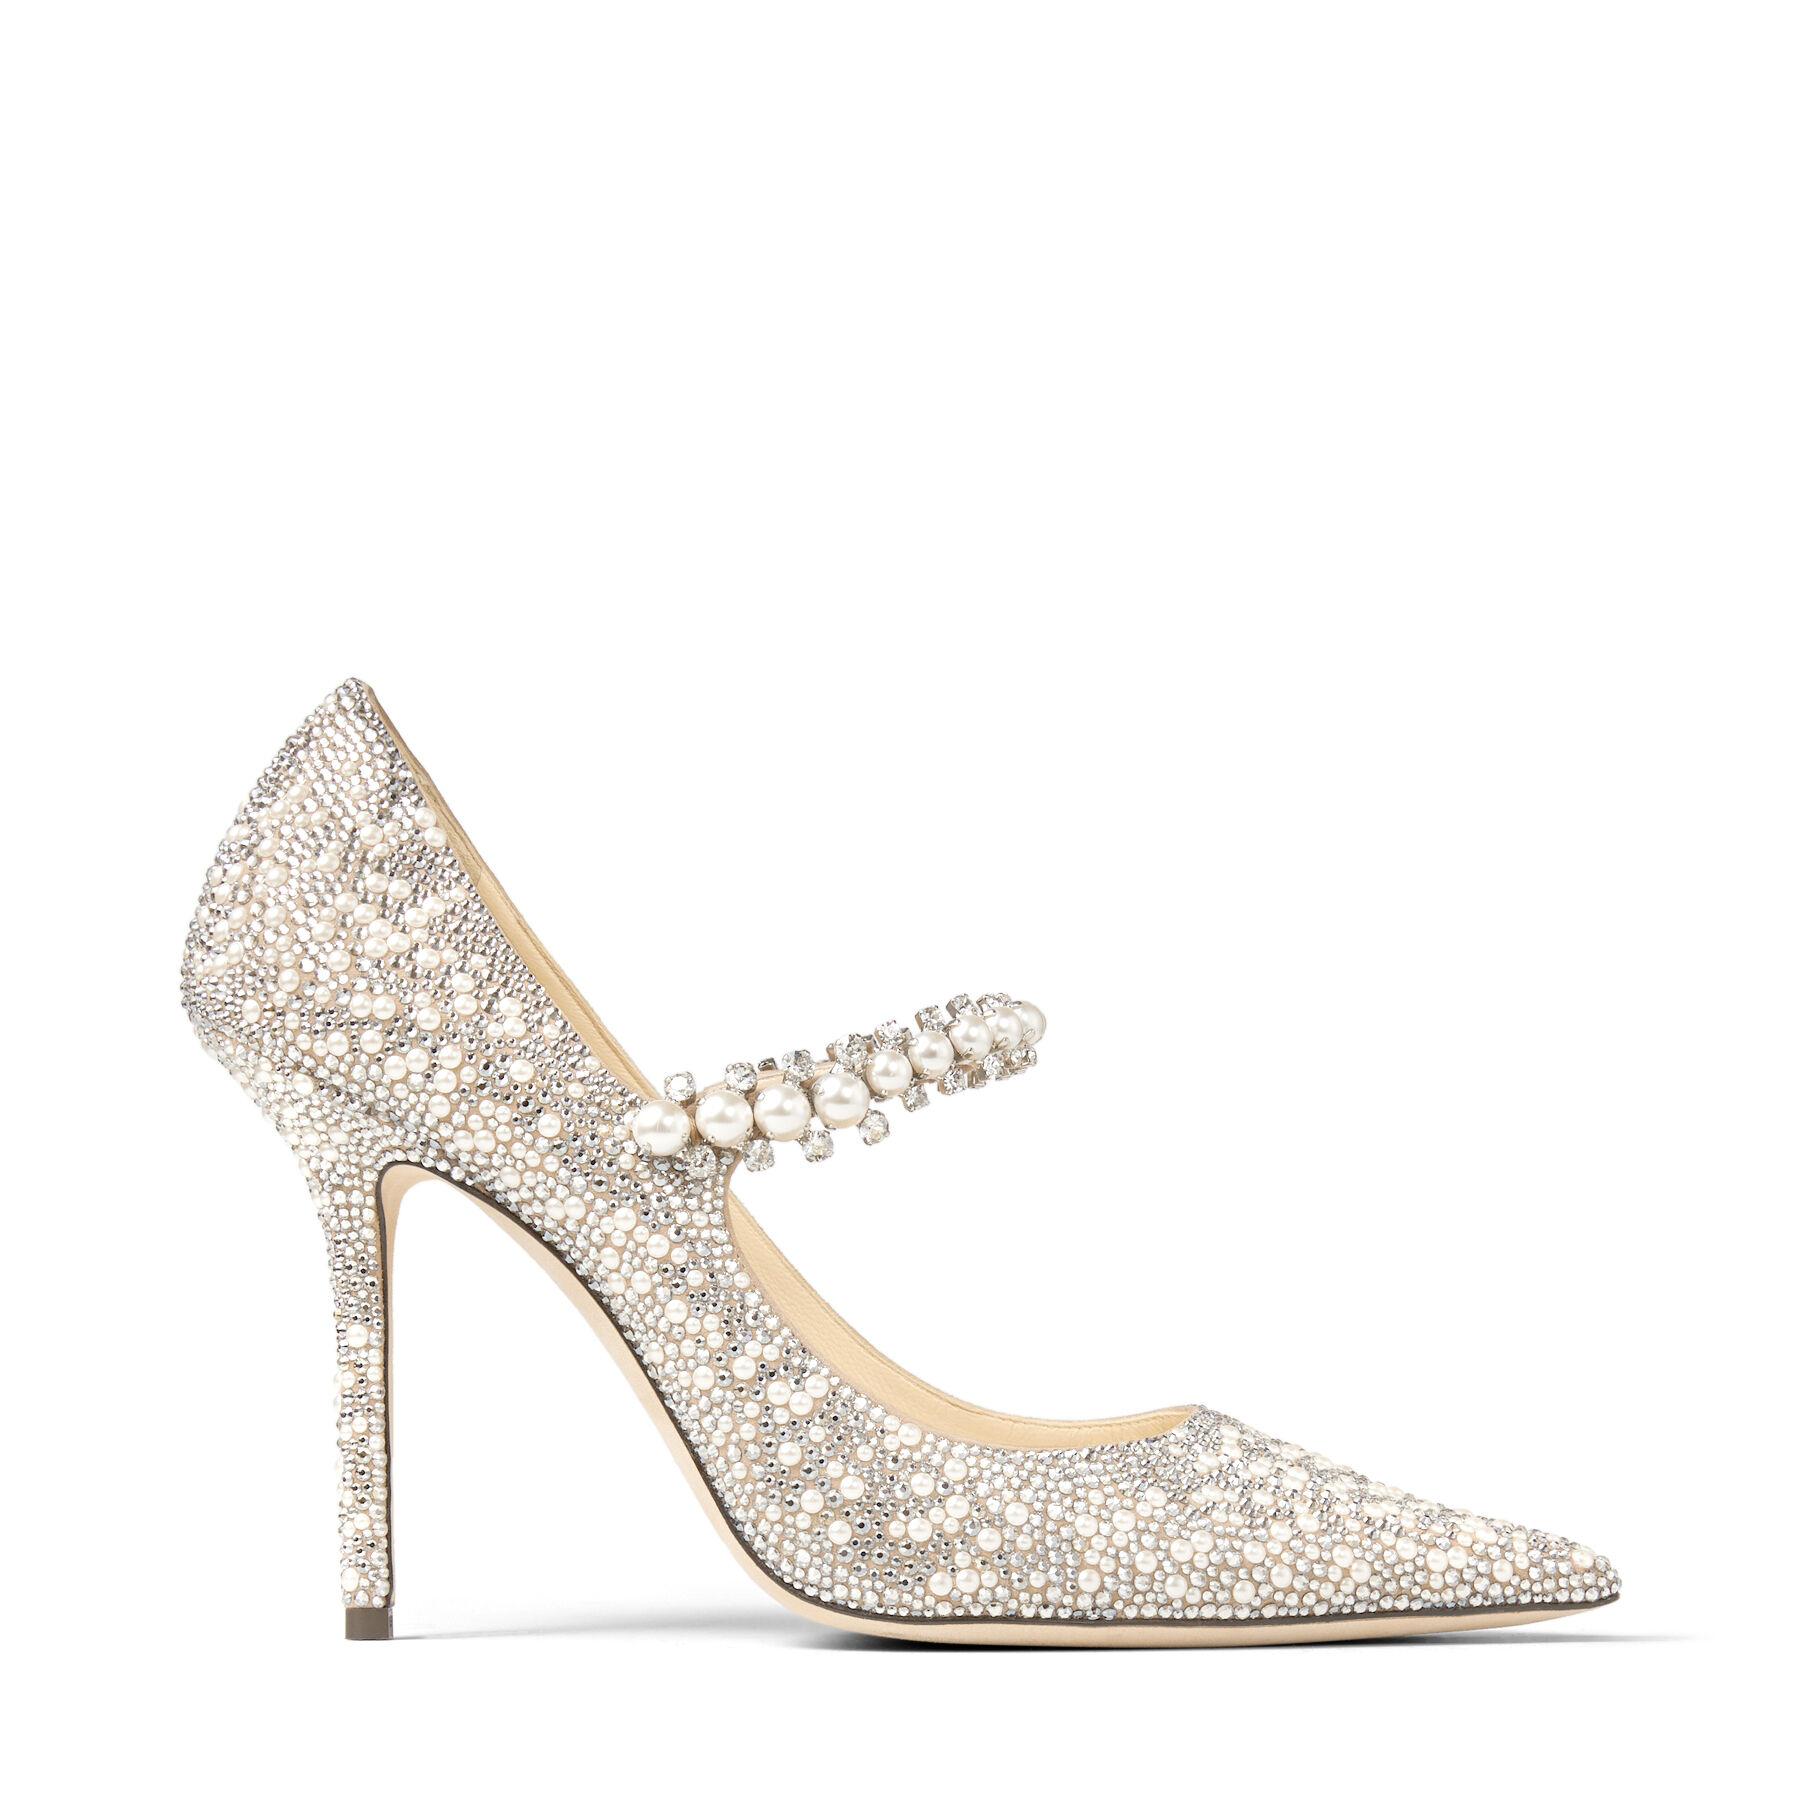 Jimmy Choo BAILY 100 - image 6 of 6 in carousel